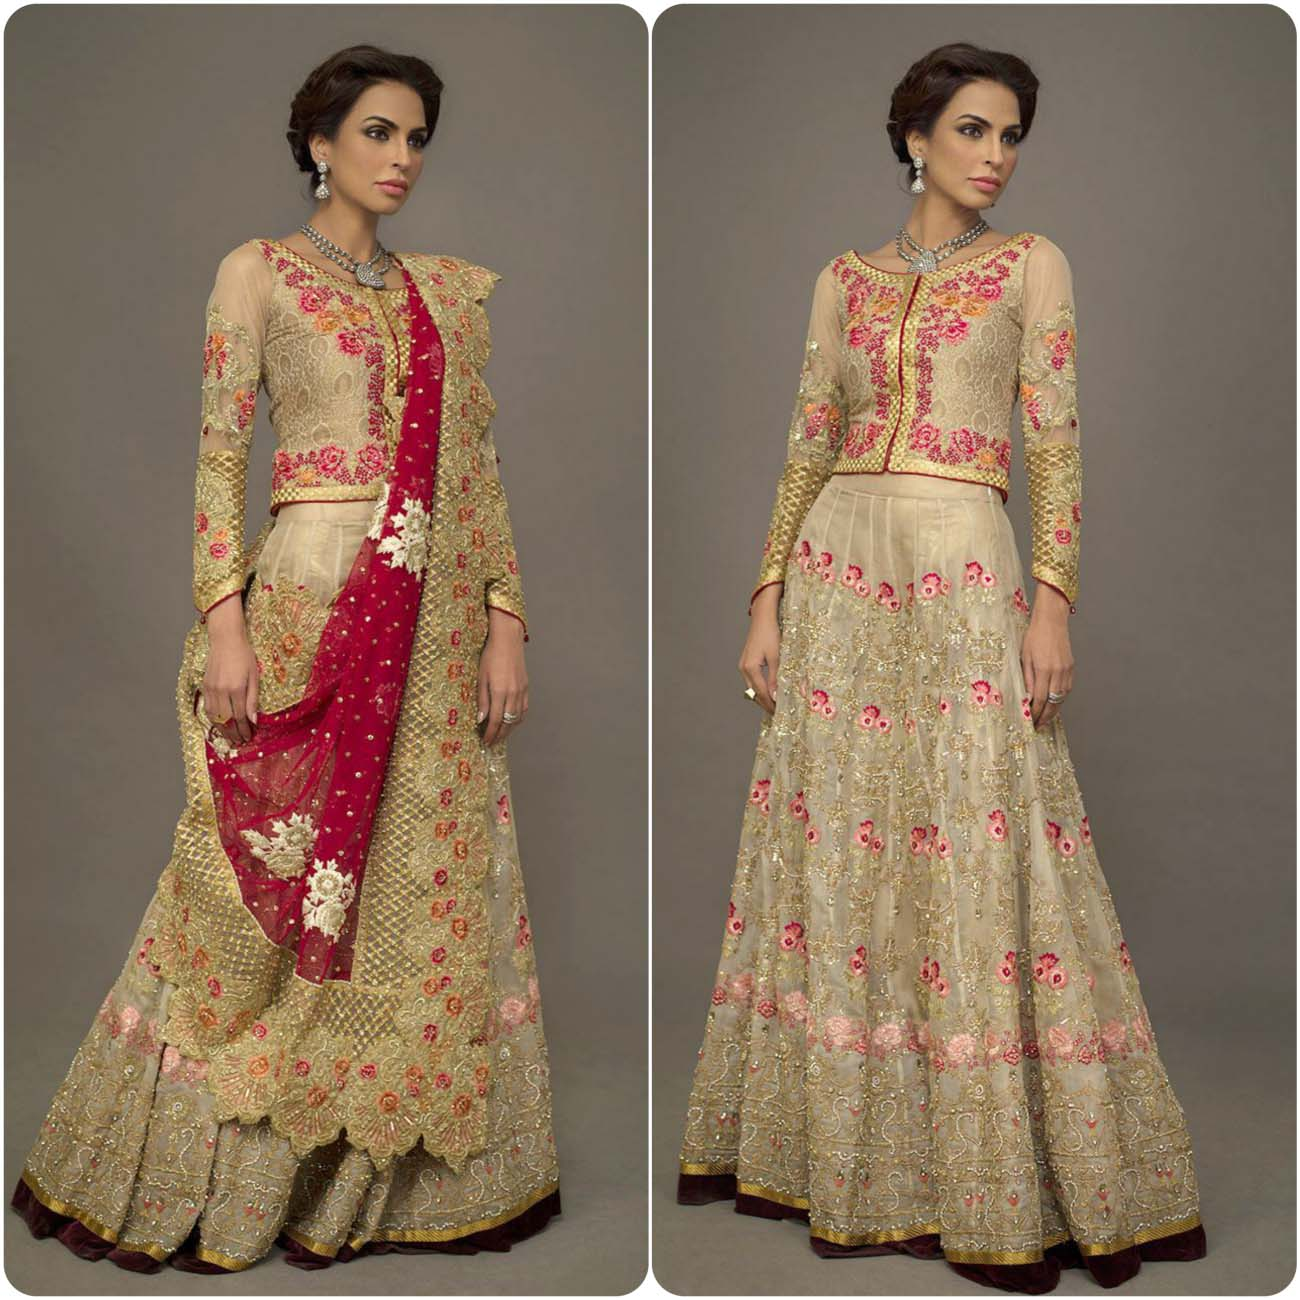 Deepak perwani Wedding Dresses Collection Fo Women 2016-2017...styloplanet (4)